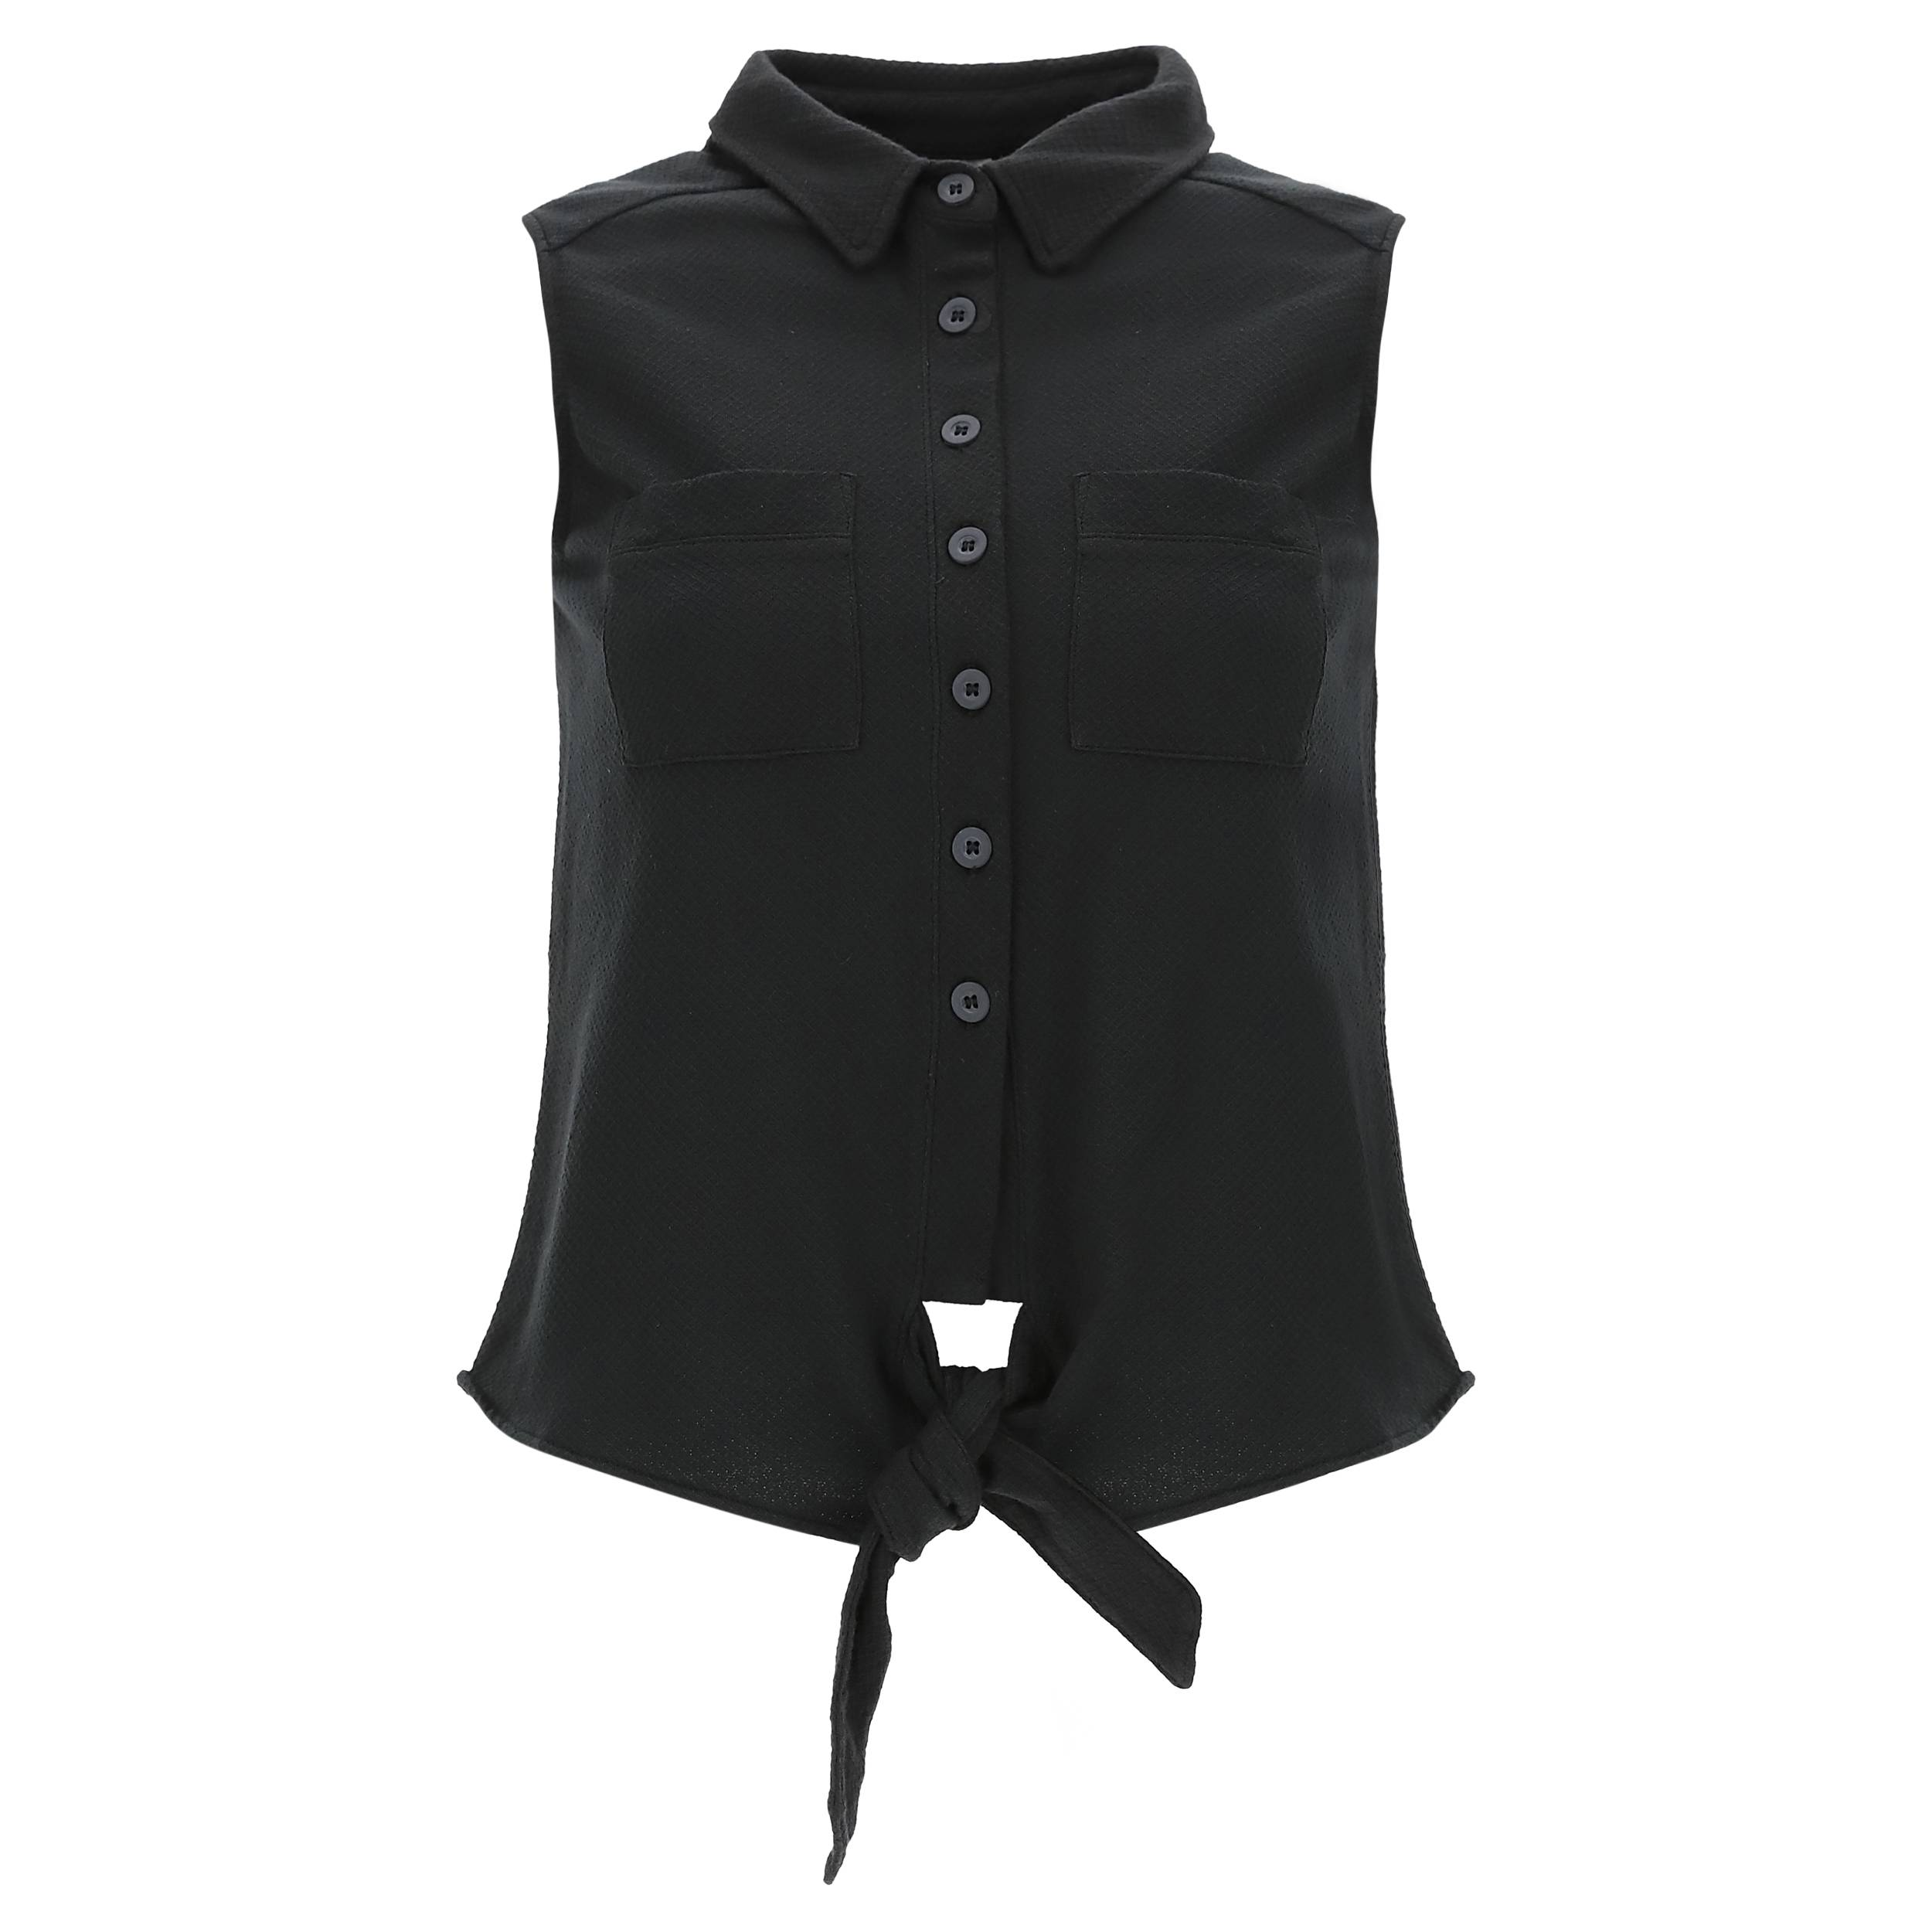 Freddy Camicia S/M Black Direct Dyed